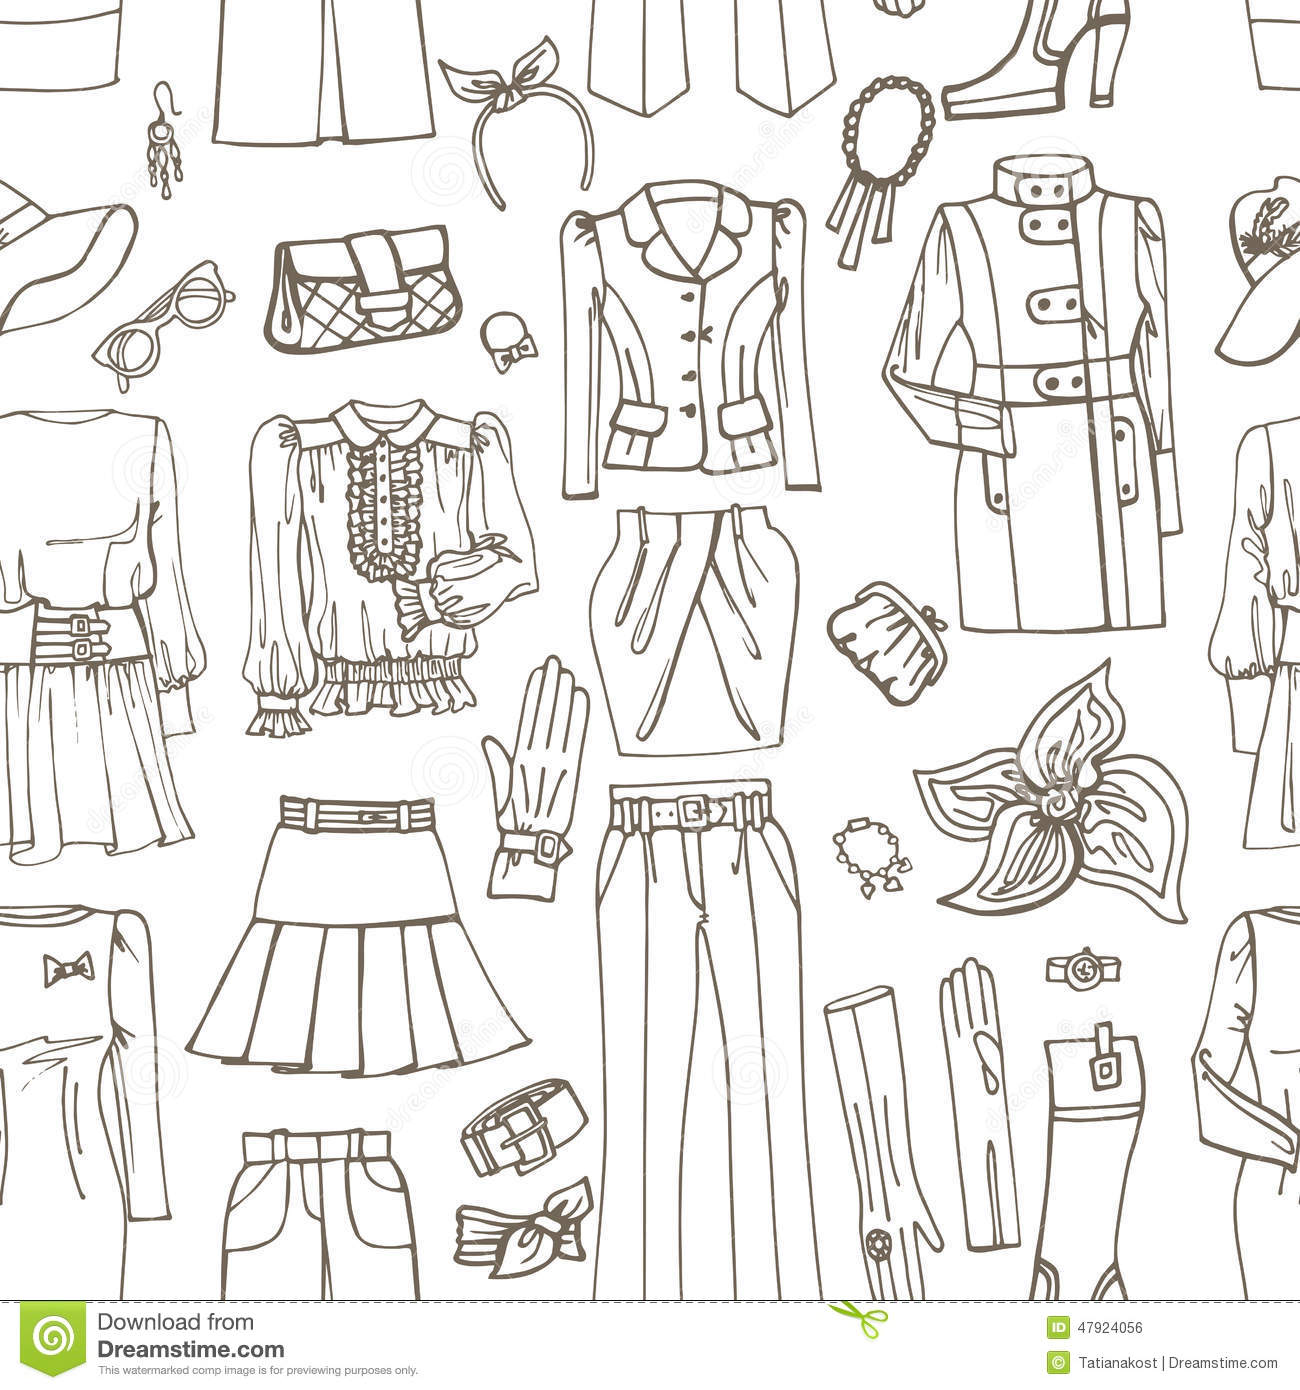 Outline Sketch Females Clothing Accessories Stock Vector